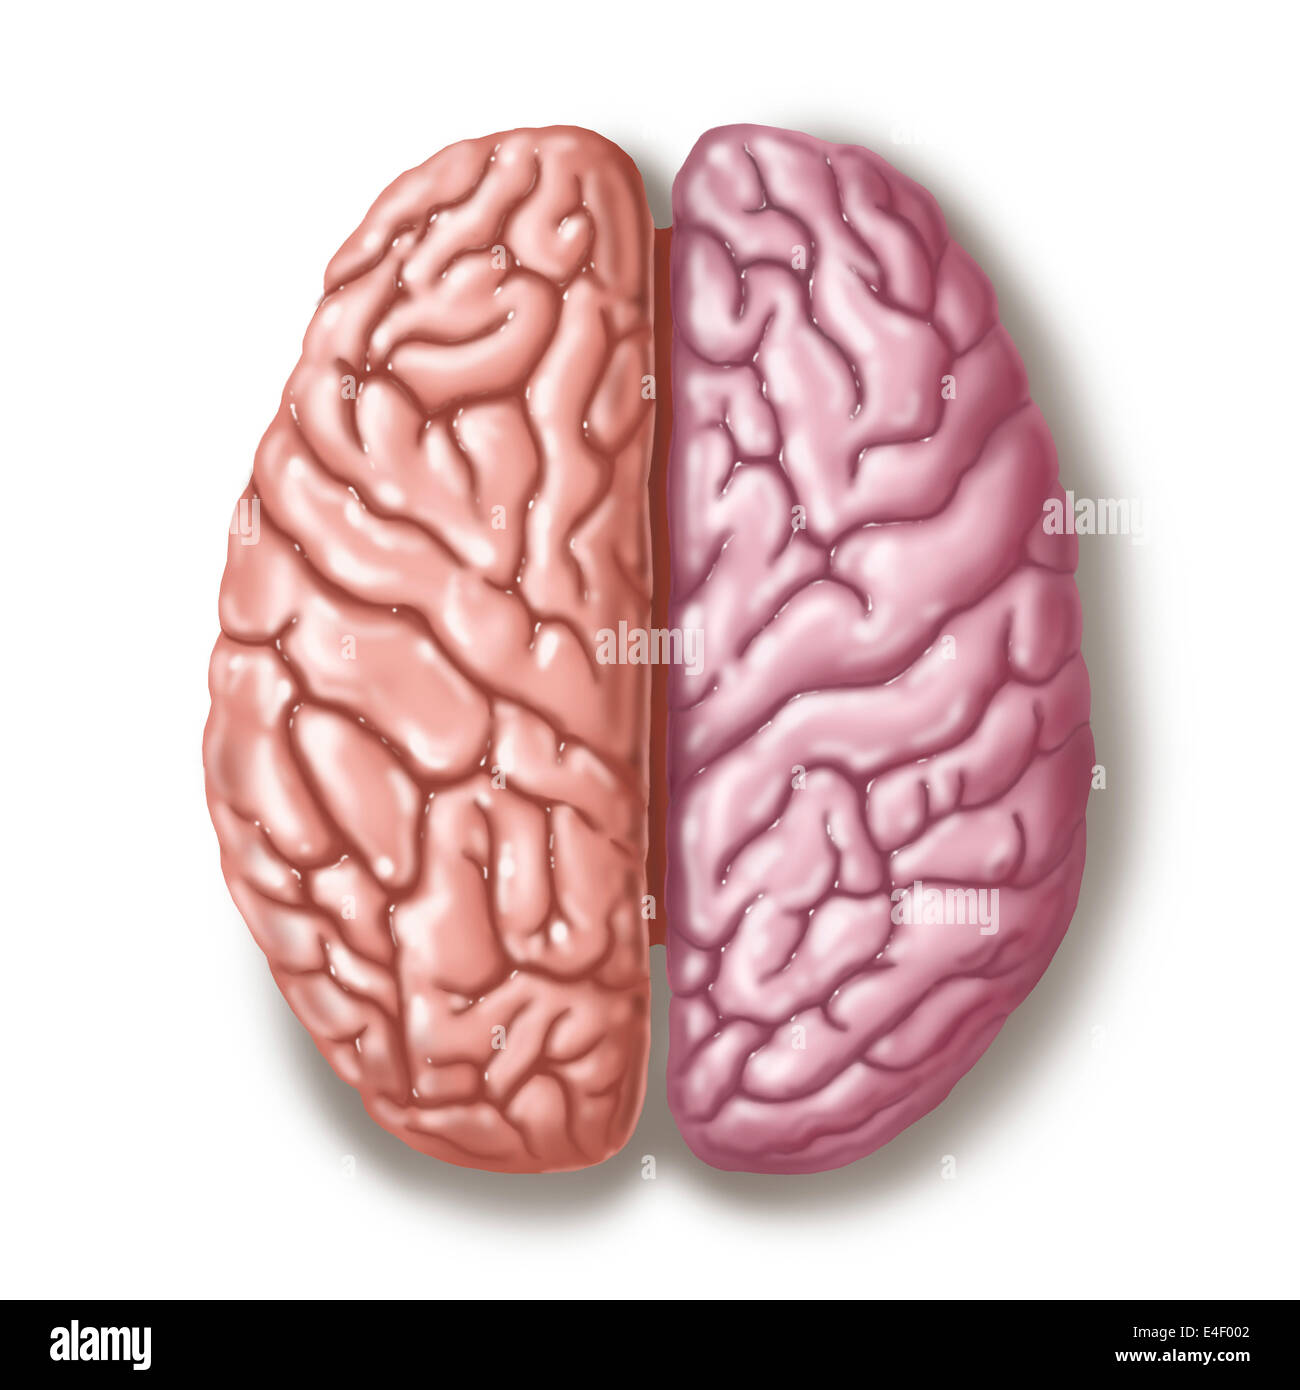 View of human brain from the top. - Stock Image